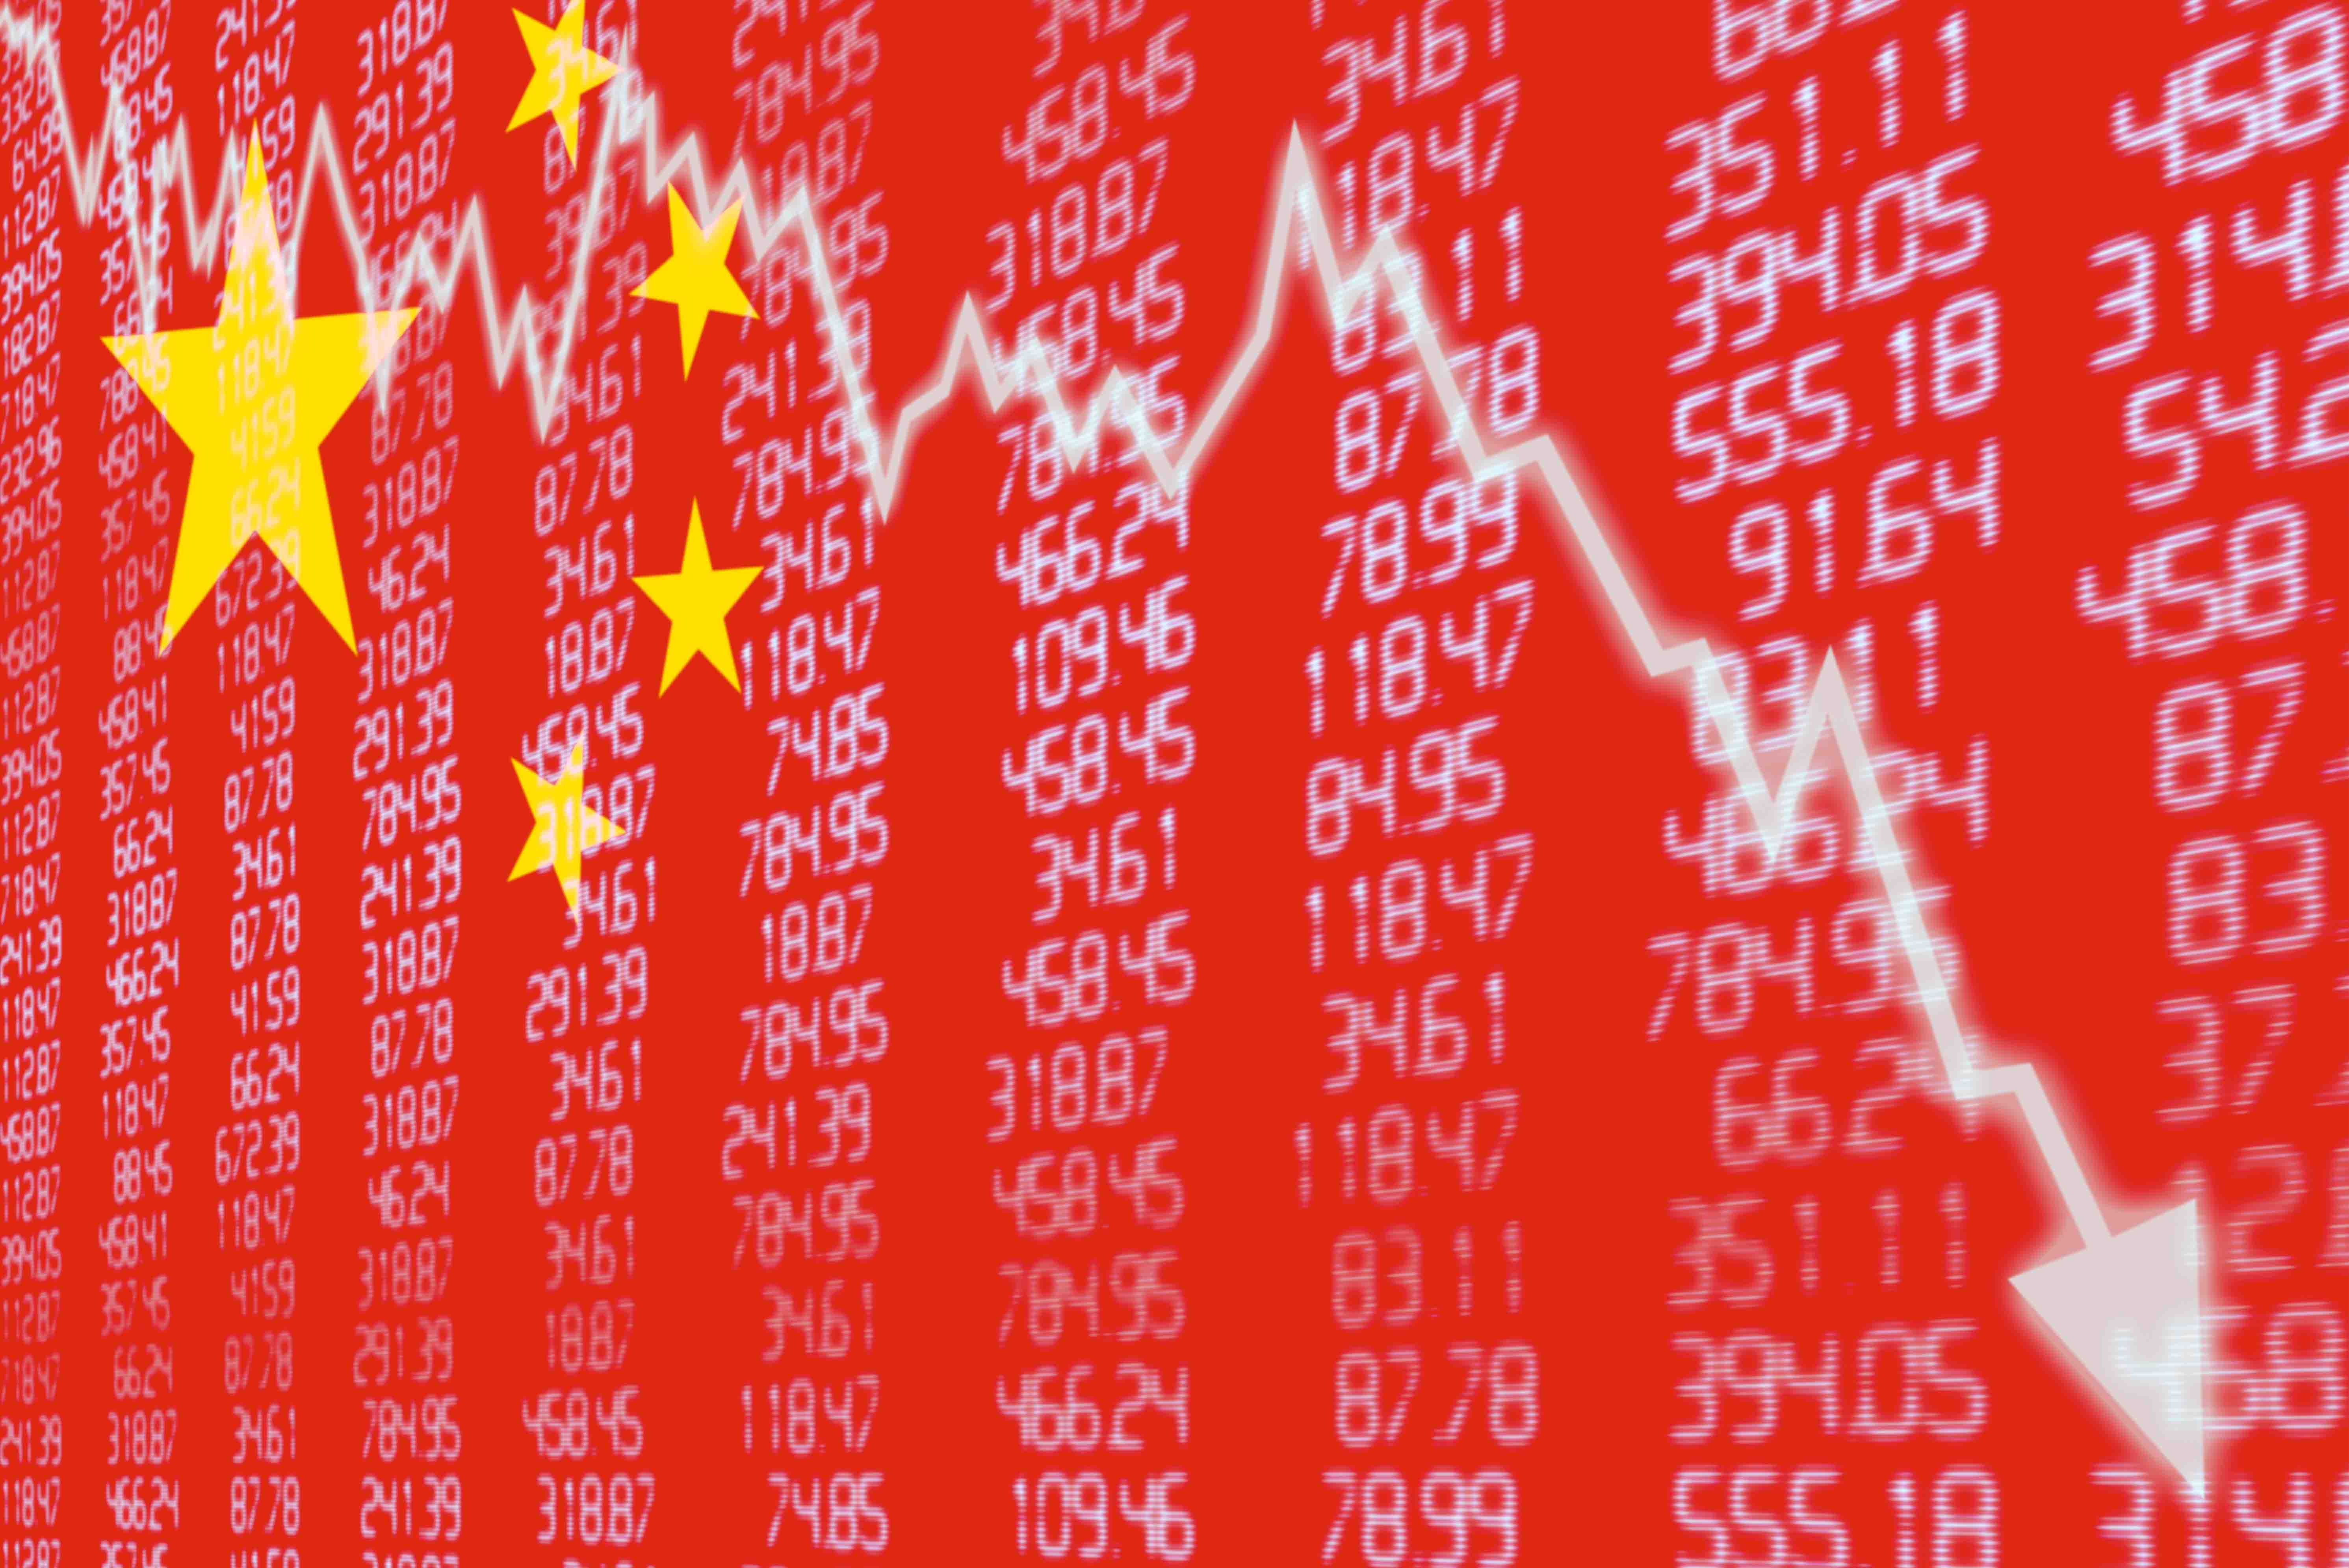 Shipping stocks takes a hit due to China's Evergrande story. Atlas Logistic NEtwork